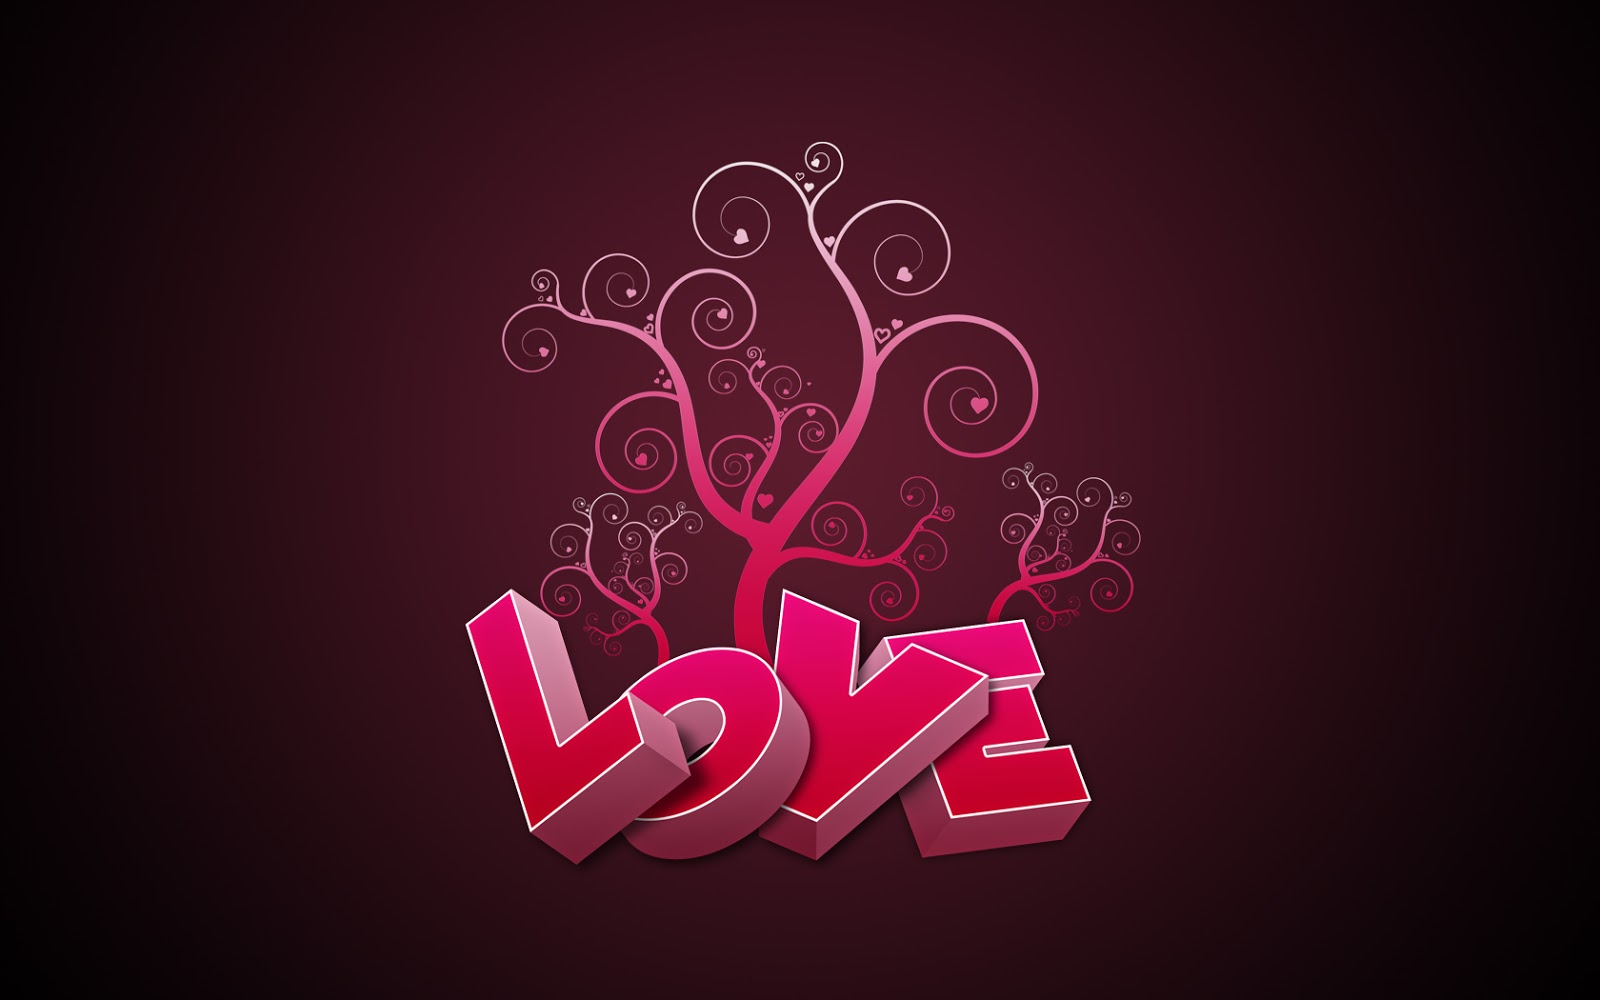 Love Wallpapers Blogspot : Sms with Wallpapers: 12/28/13